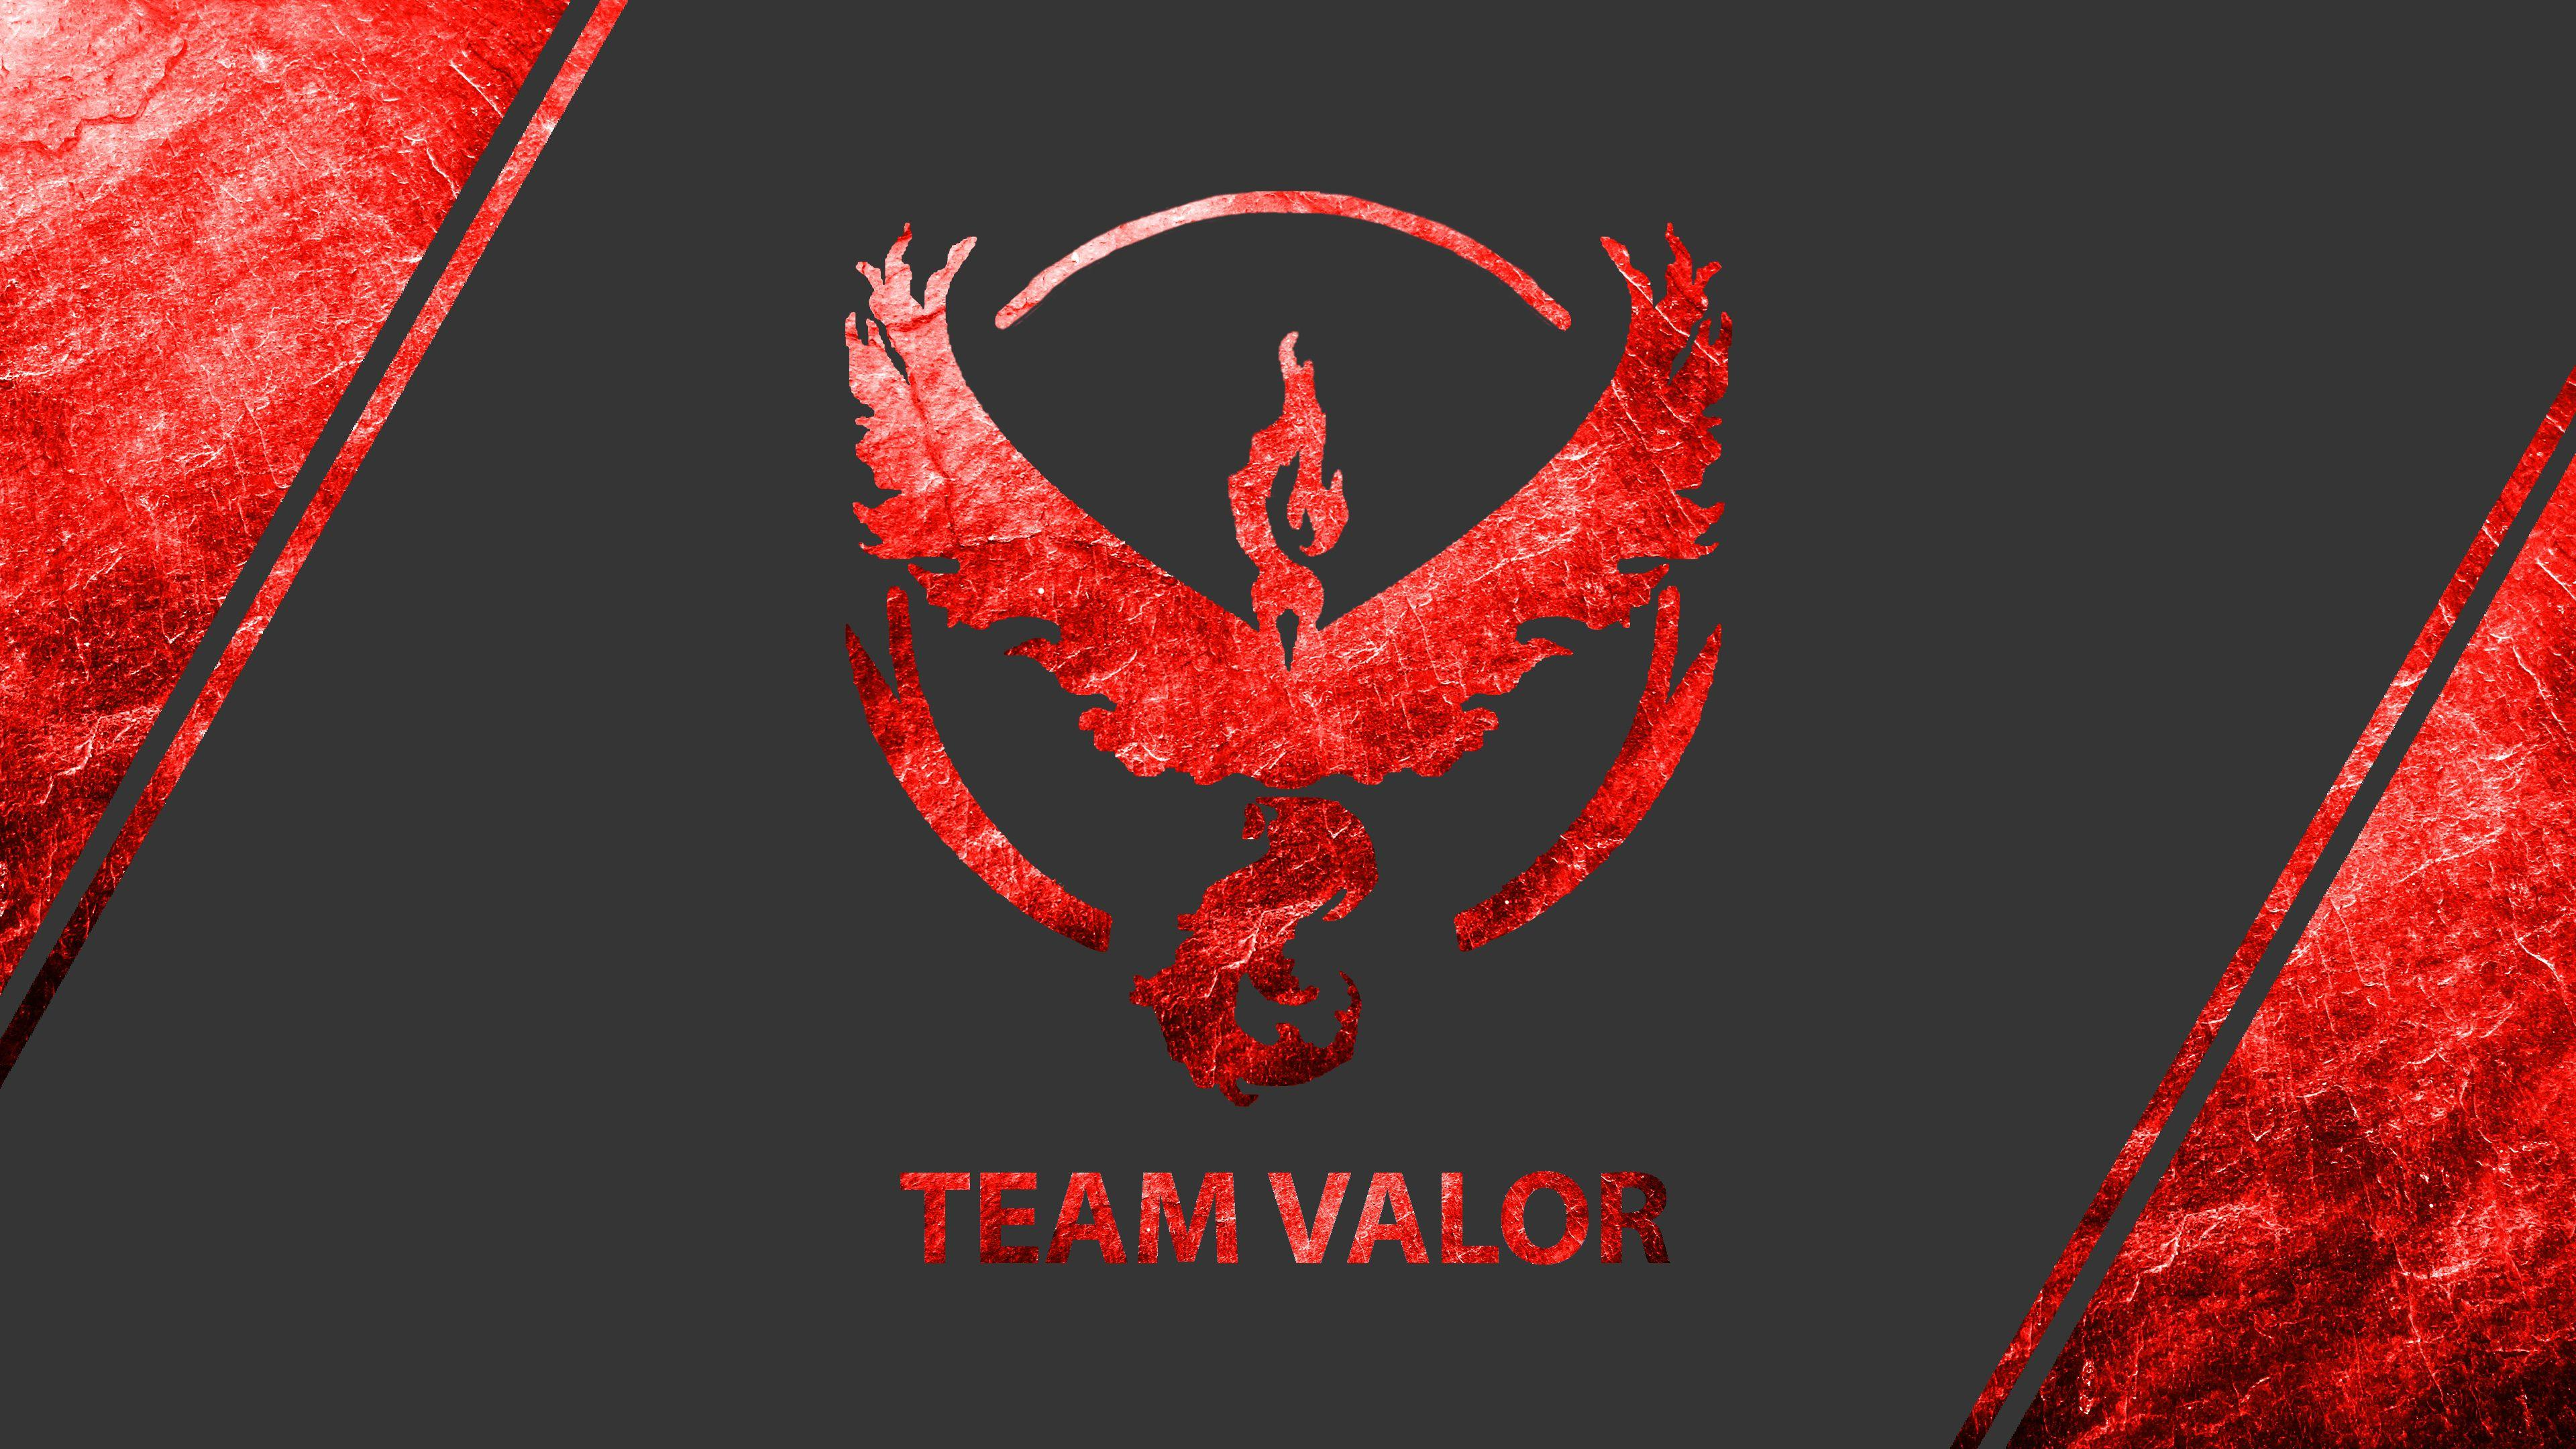 Pokemon Go Teams Valor Wallpapers Wallpaper Cave